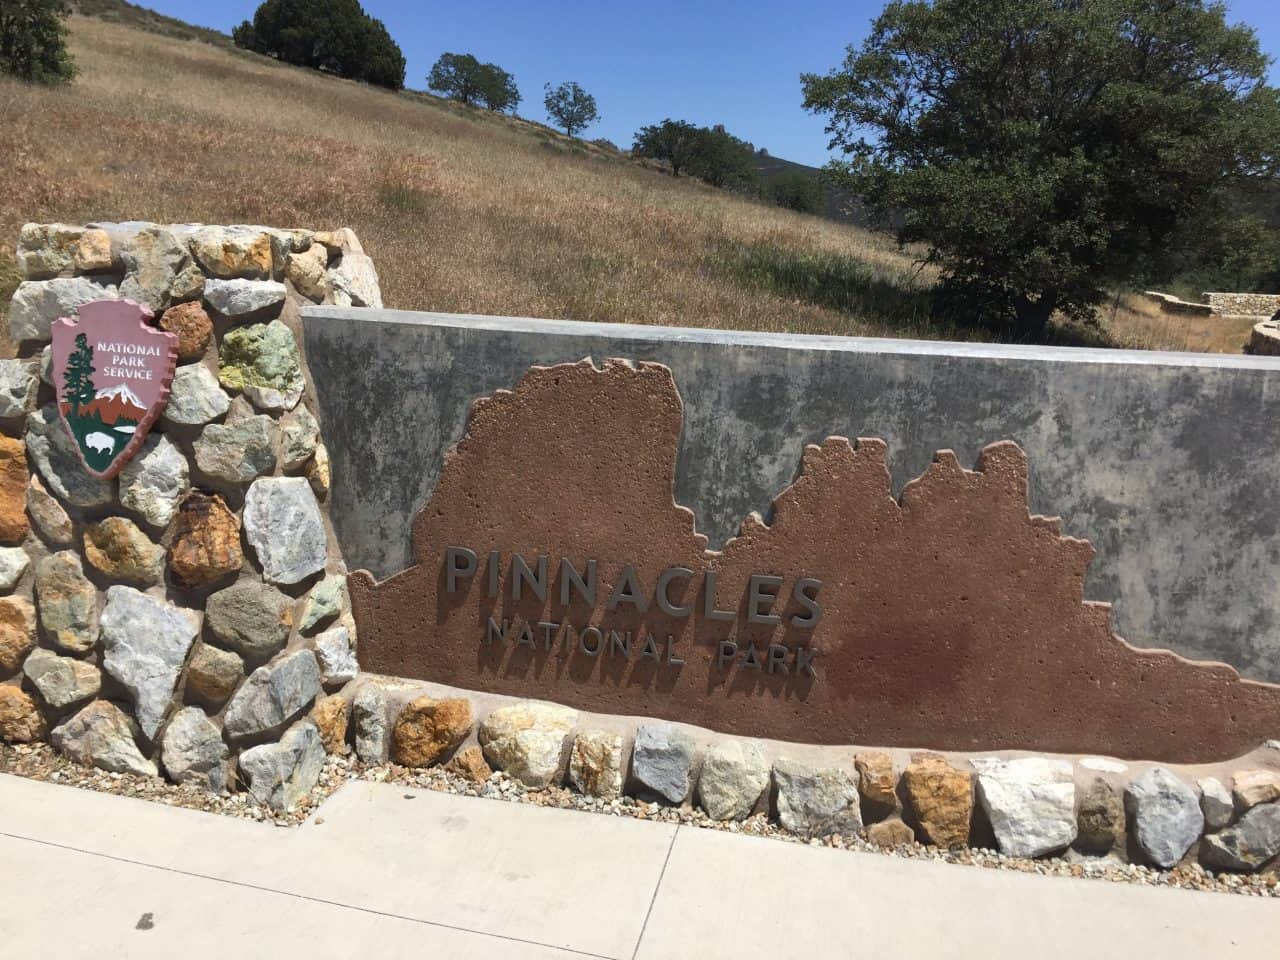 The entrance sign to Pinnacles National Park.